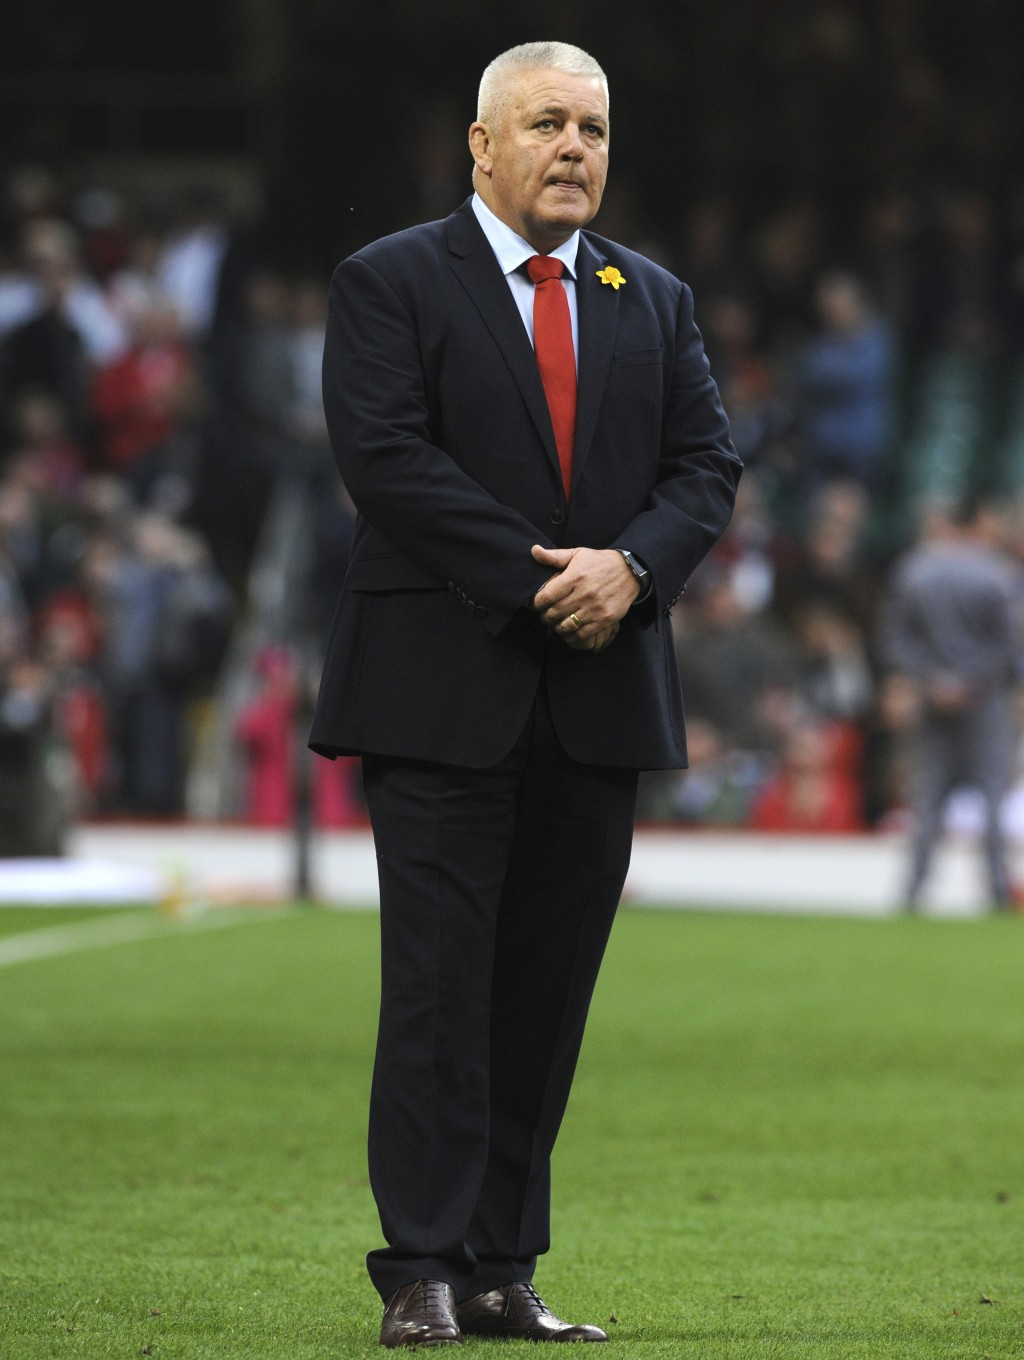 FILE - In this file photo dated Saturday, Feb. 23, 2019, Wales head coach Warren Gatland watches his players ahead of their Six Nations rugby union in